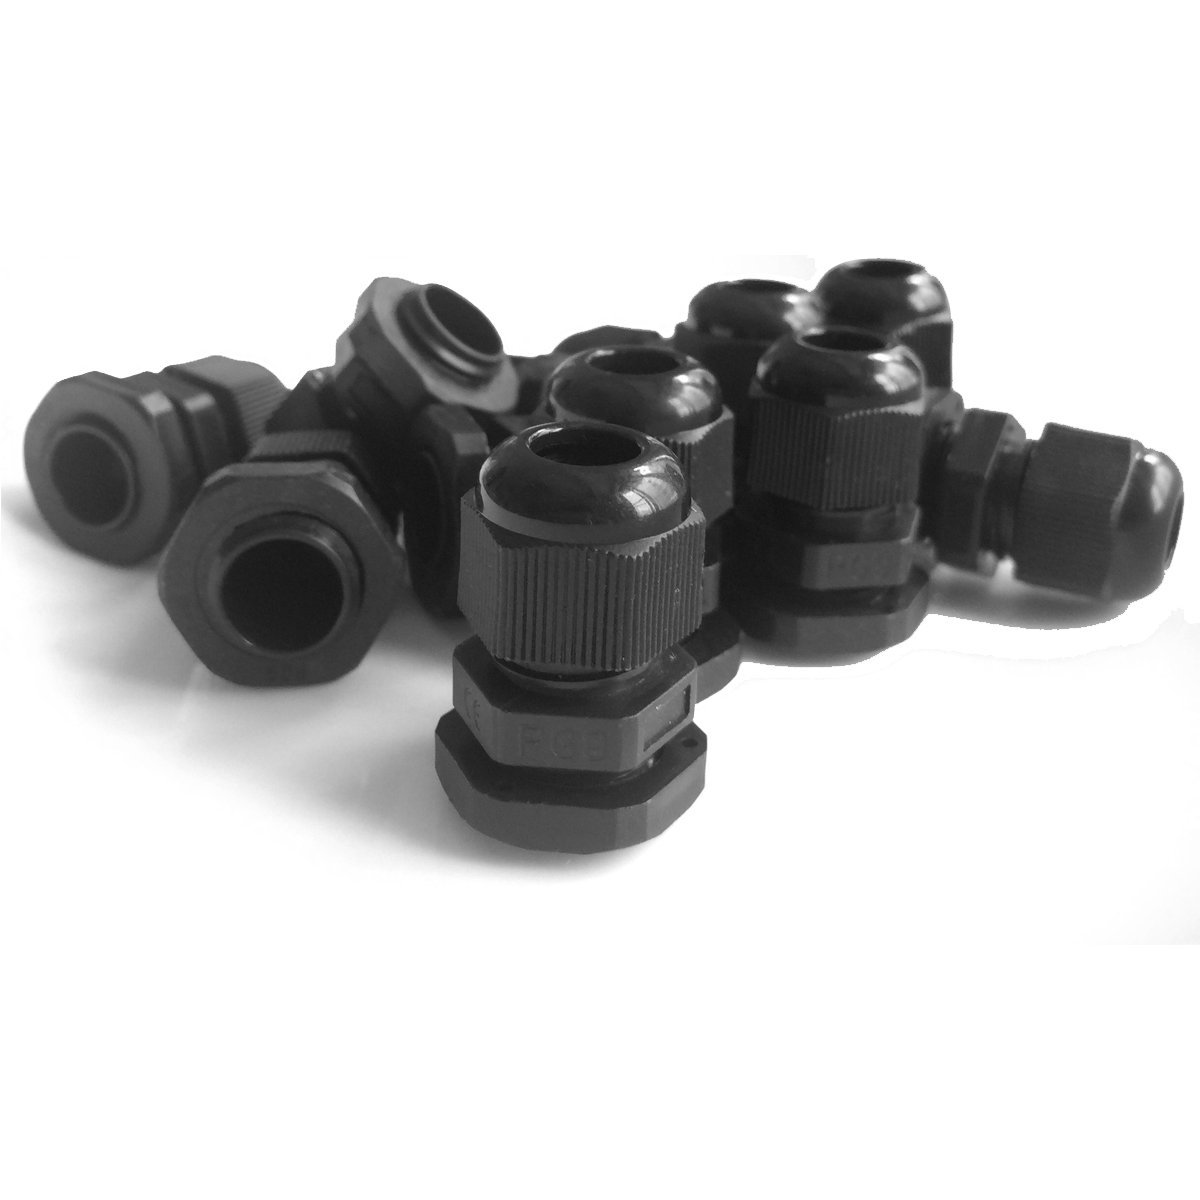 20 Pieces Black Plastic Nylon Waterproof Wire Glands Connector Fitting Lantee PG 9 Cable Gland